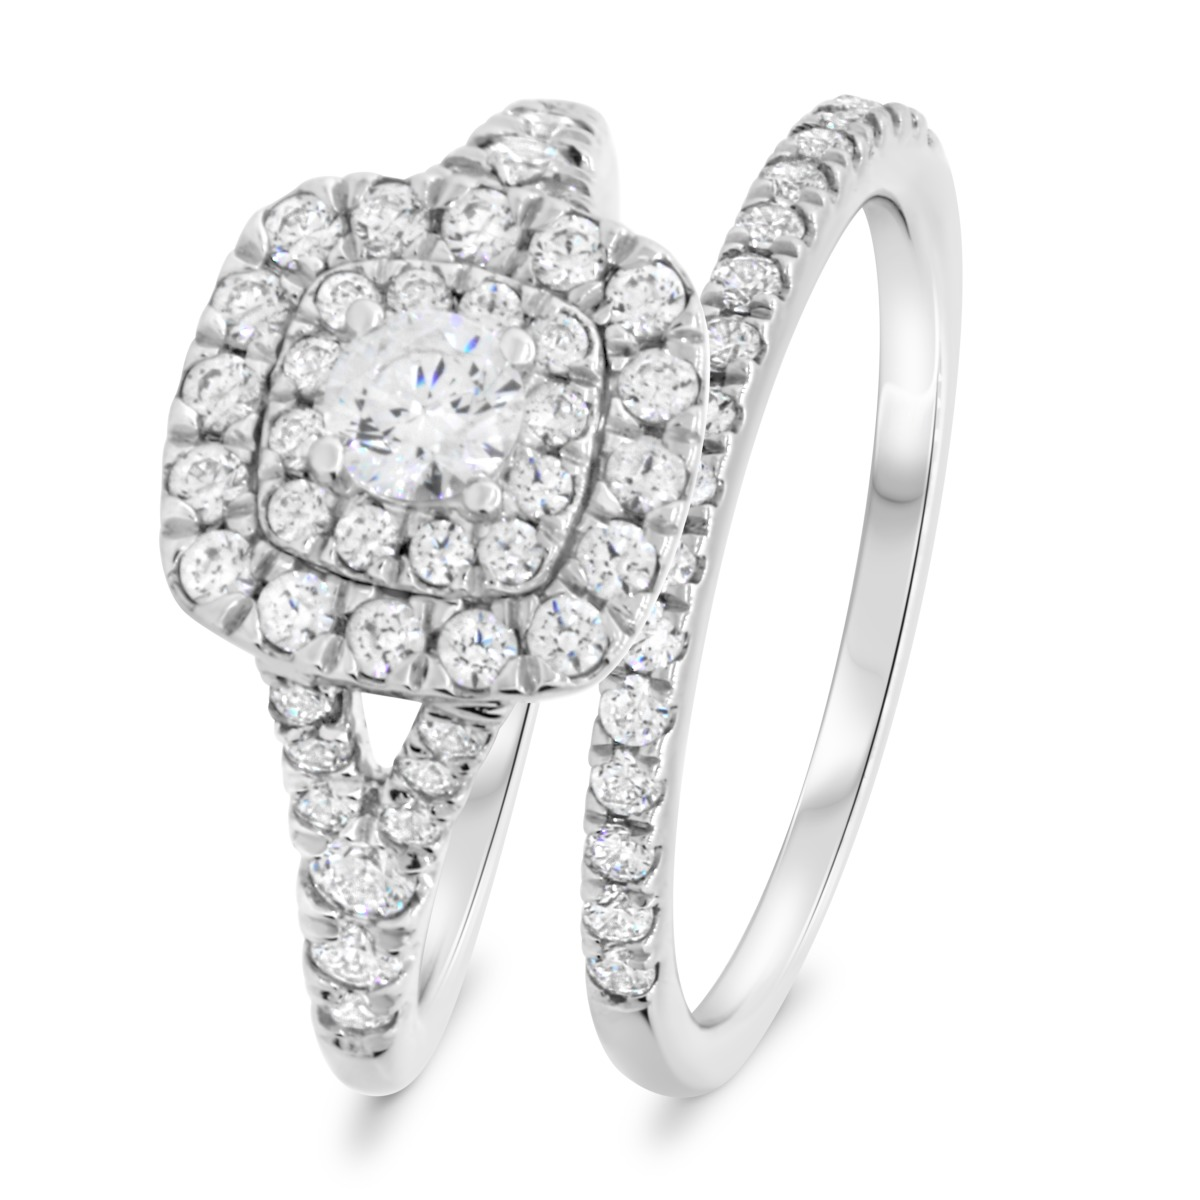 1 1/5 Carat T.W. Diamond Matching Bridal Ring Set 14K White Gold